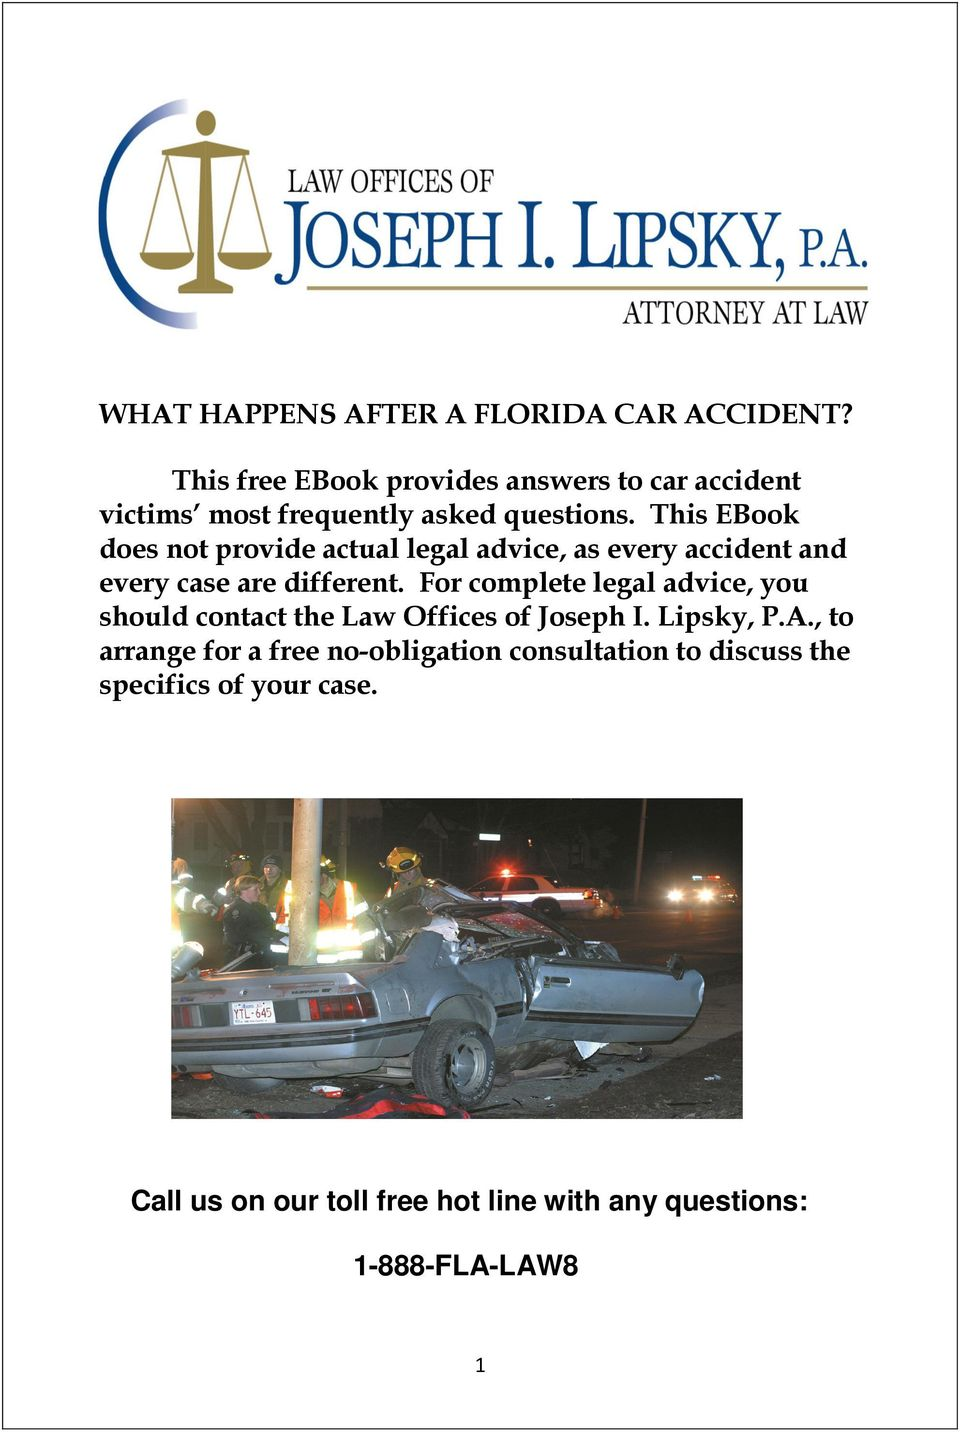 This EBook does not provide actual legal advice, as every accident and every case are different.